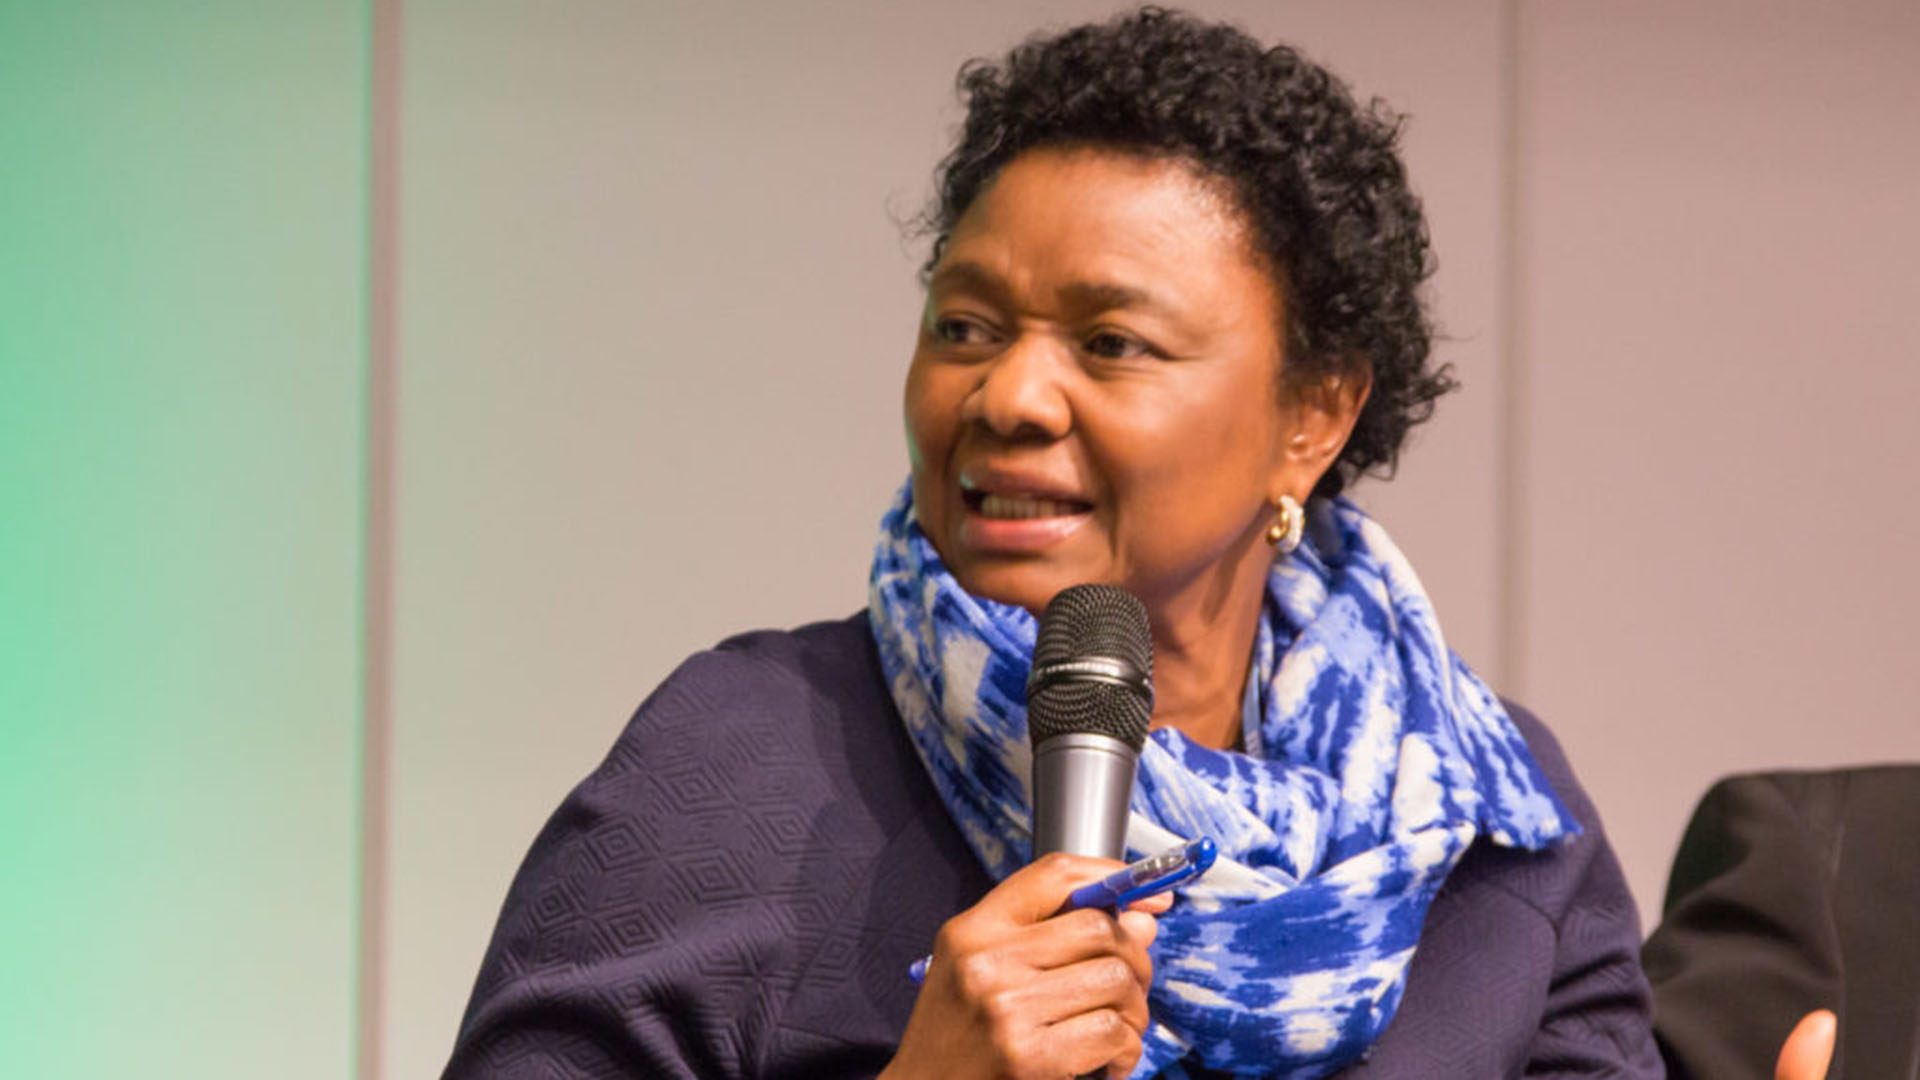 Professor Hlengiwe Mkhize passed away on Thursday morning, at the age of 69 years old. Photo:Supplied/Food For Mzansi